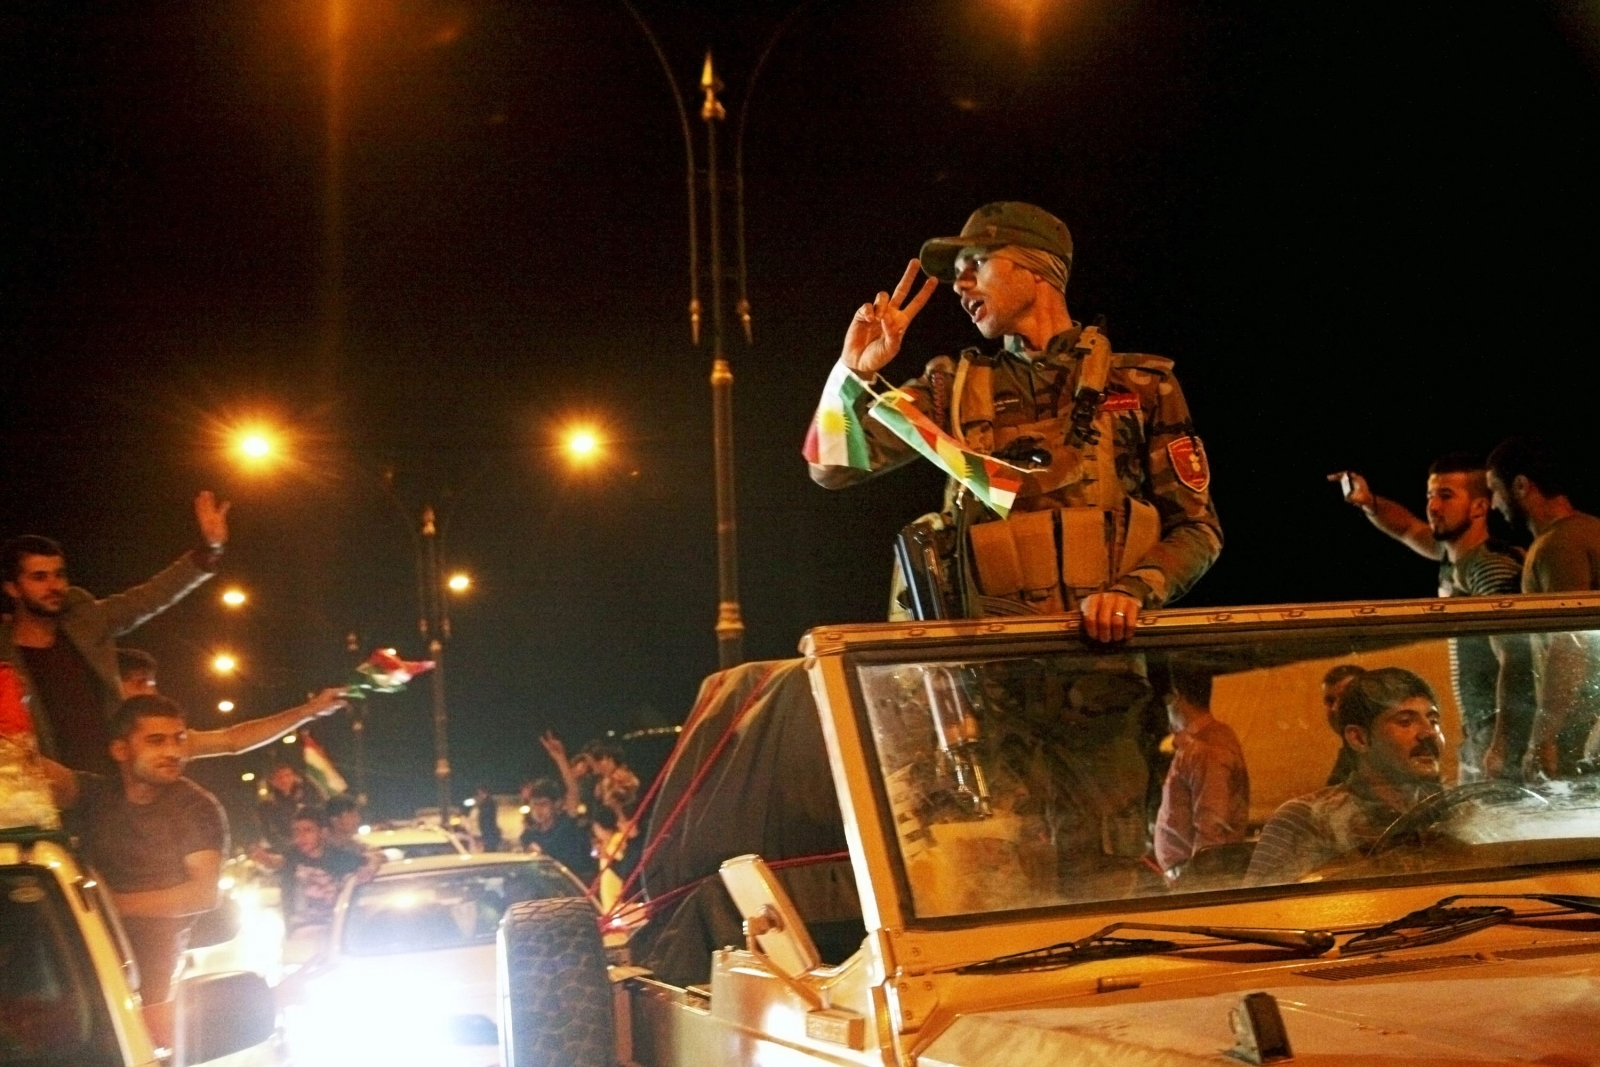 150 Iraqi Peshmerga Fighters Travelling to Syria to Fight Isis